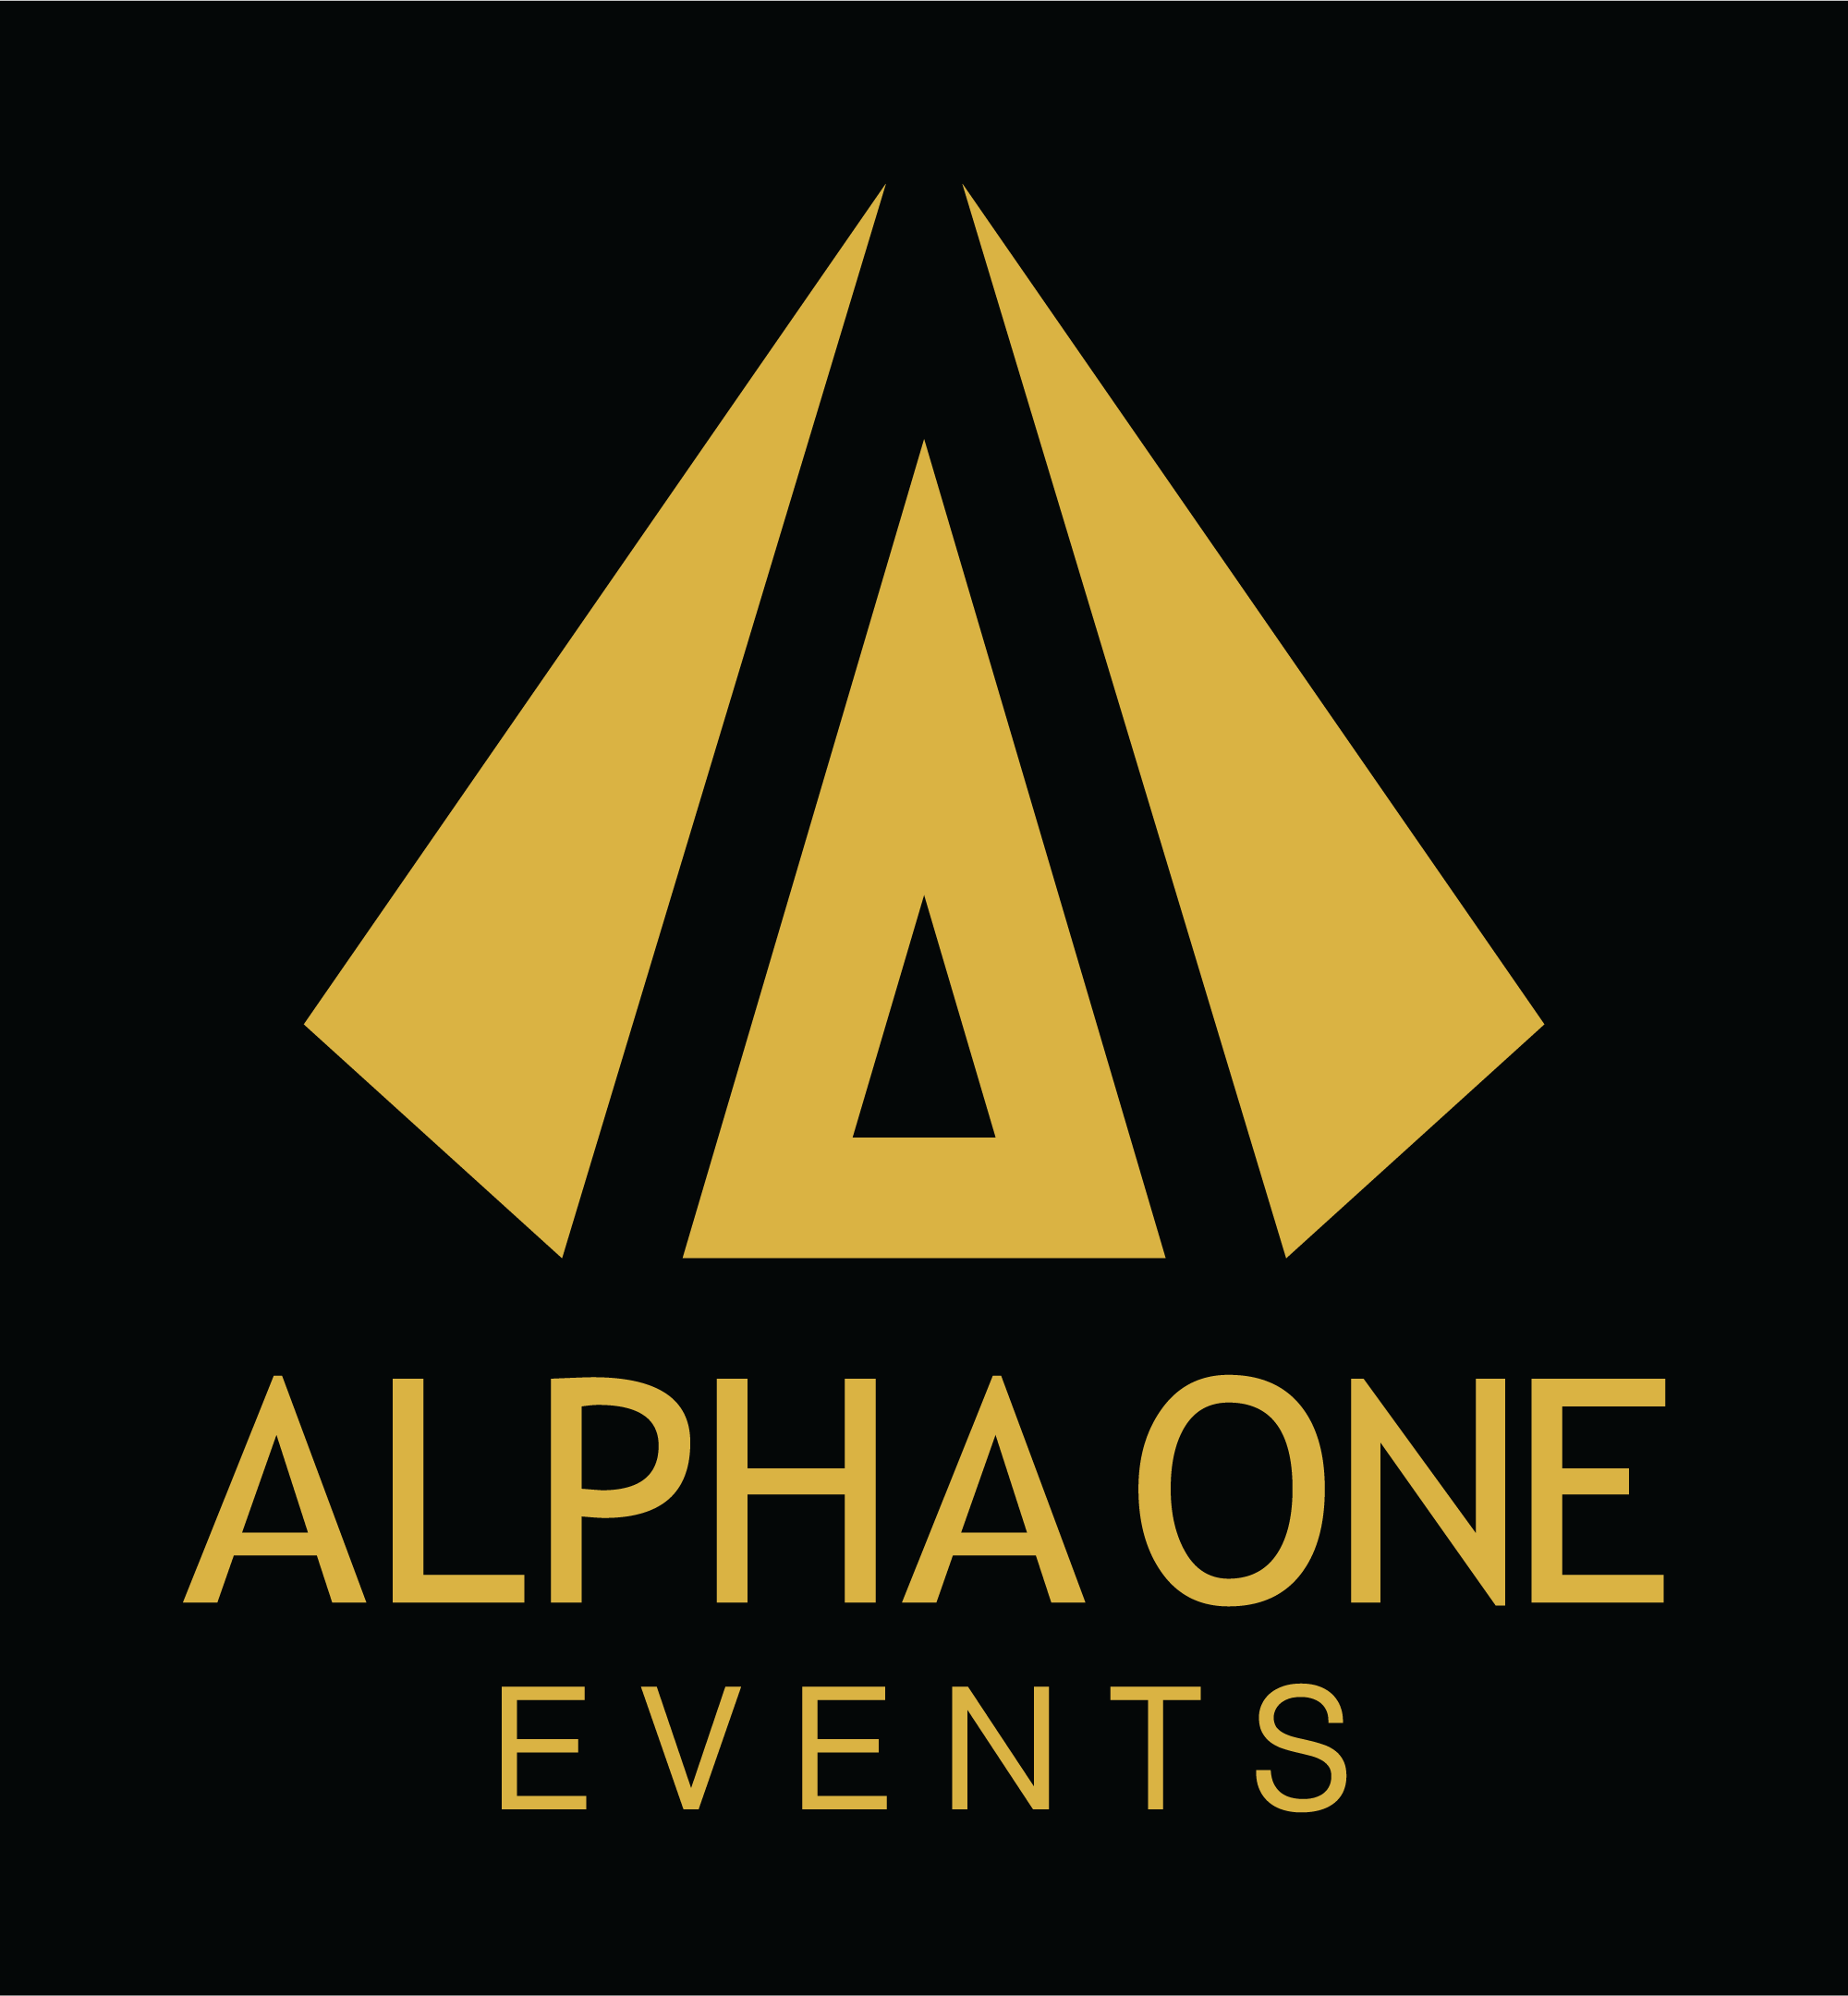 Alpha One Events Announce SAS as Strategic Analytics Partner at the Middle East NXT Banking Summit